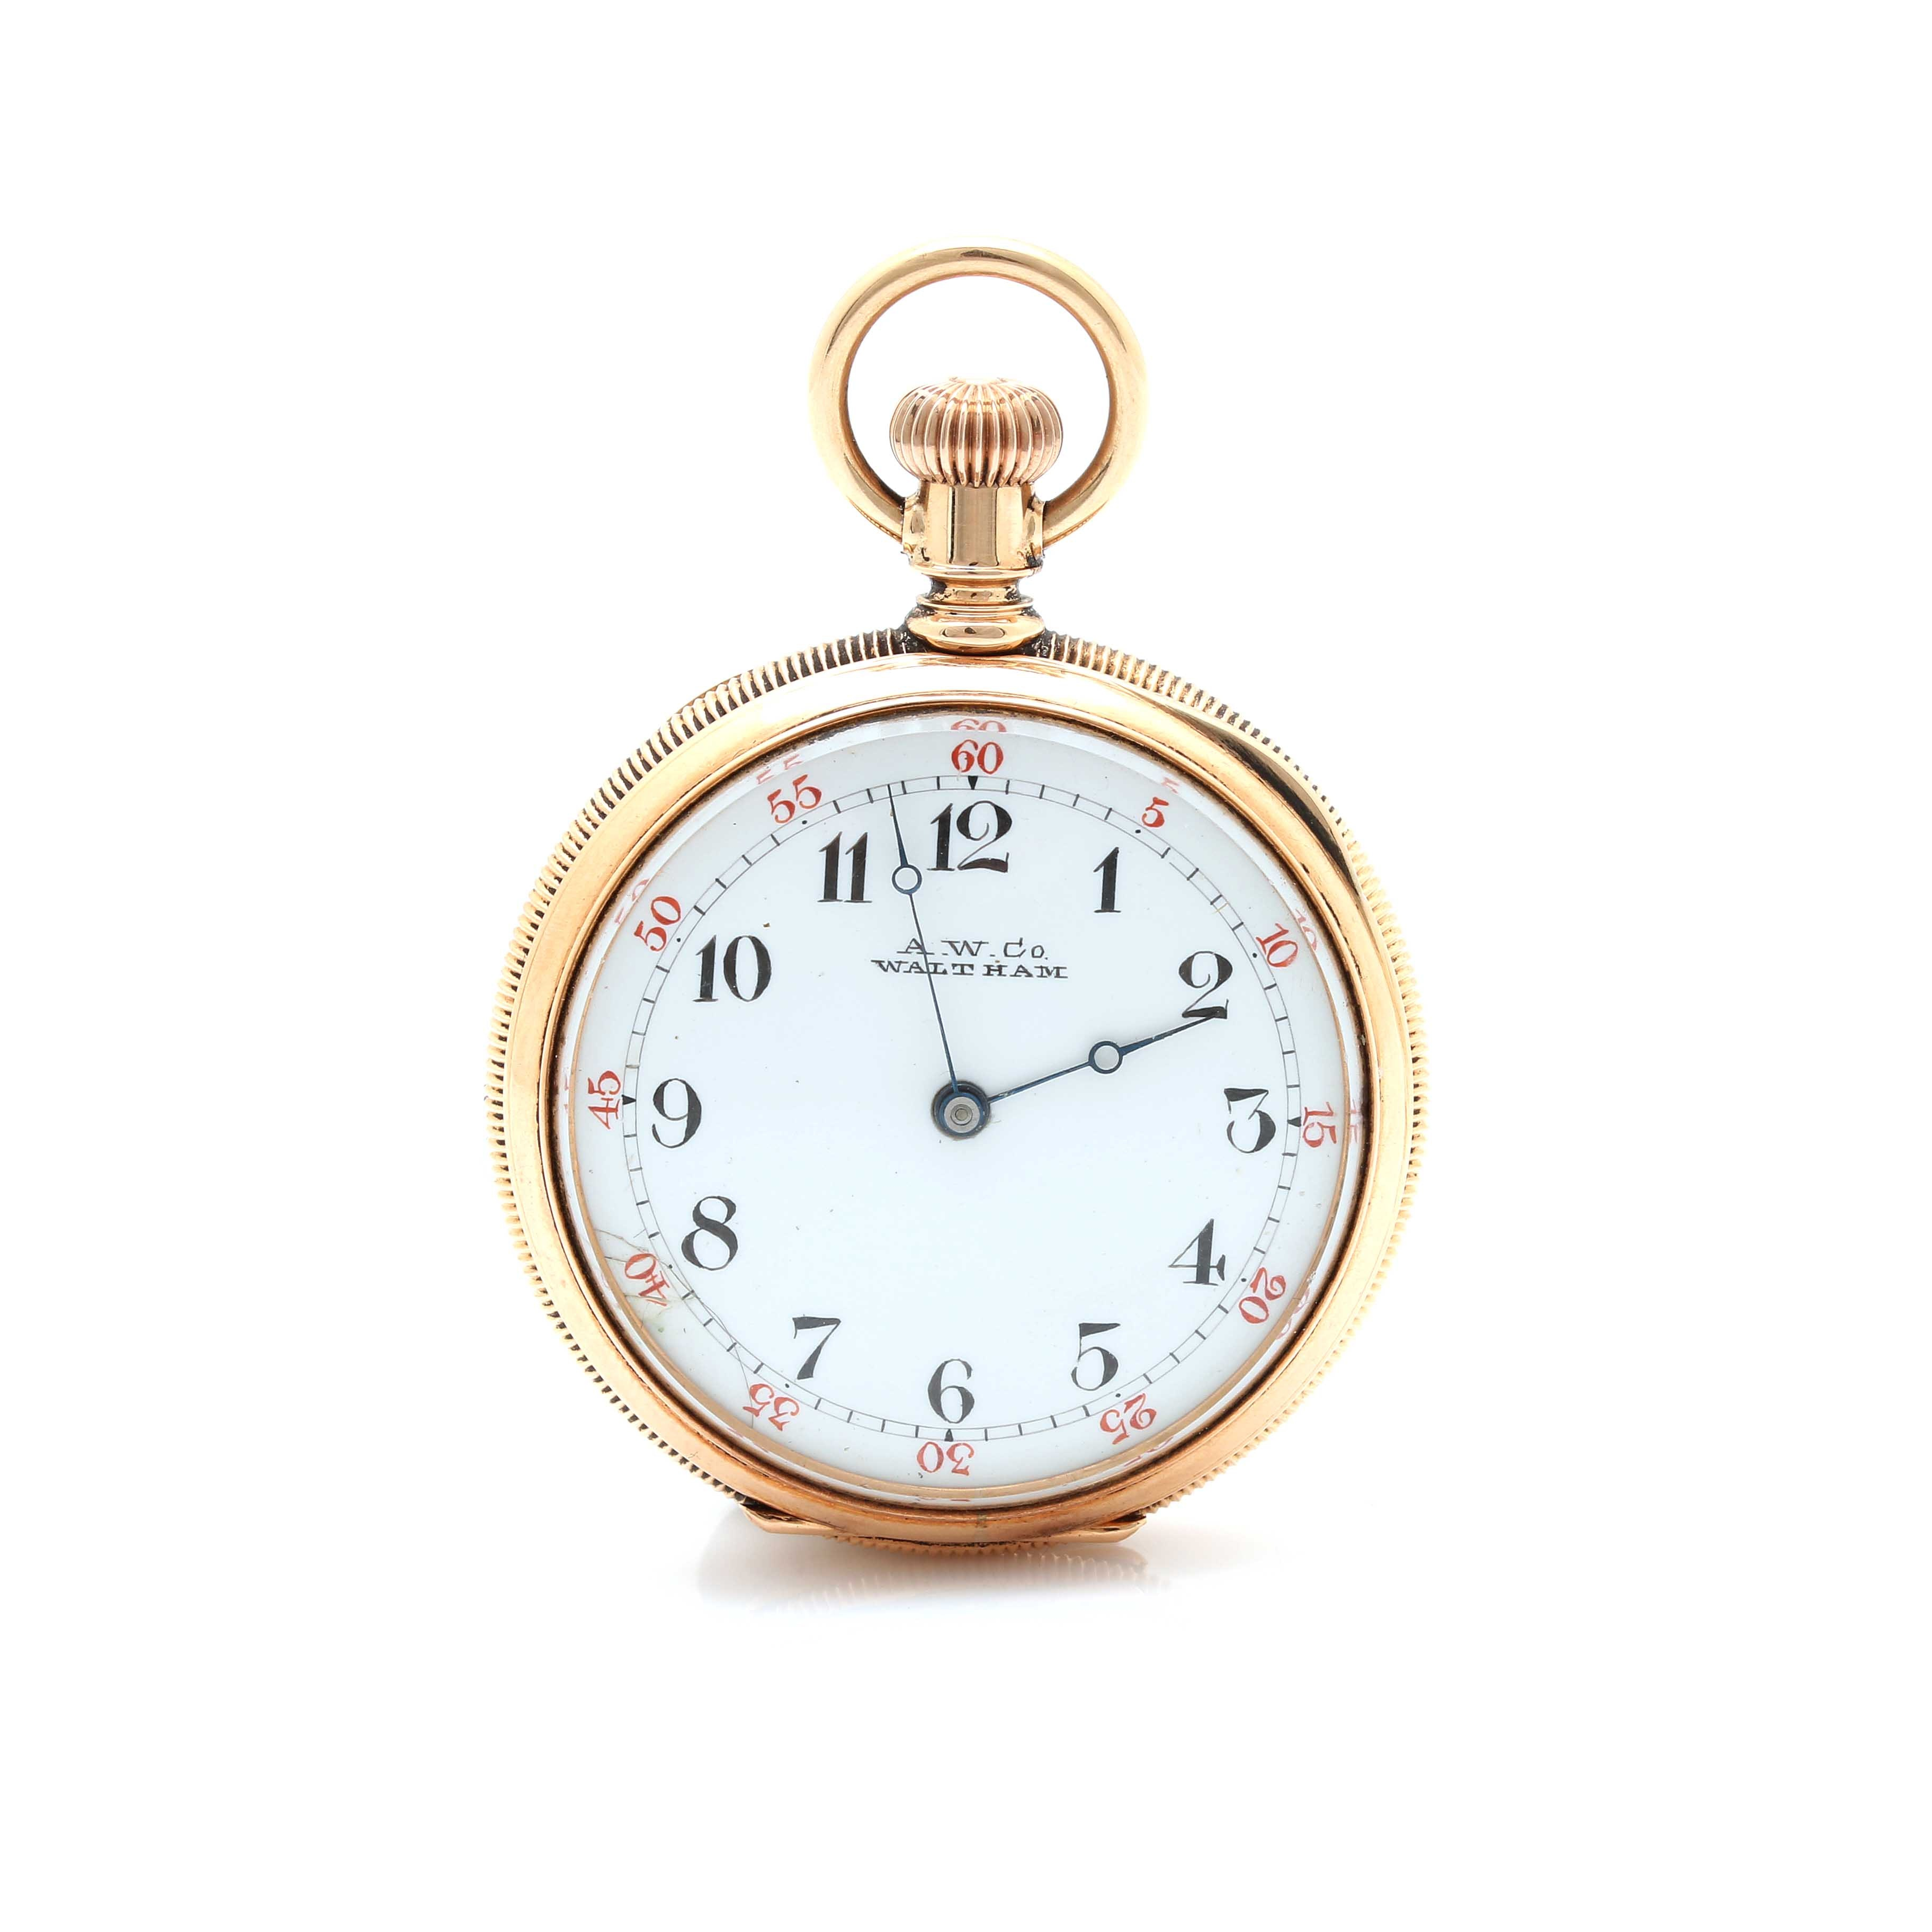 Antique Waltham 14K Yellow Gold Open Face Pocket Watch